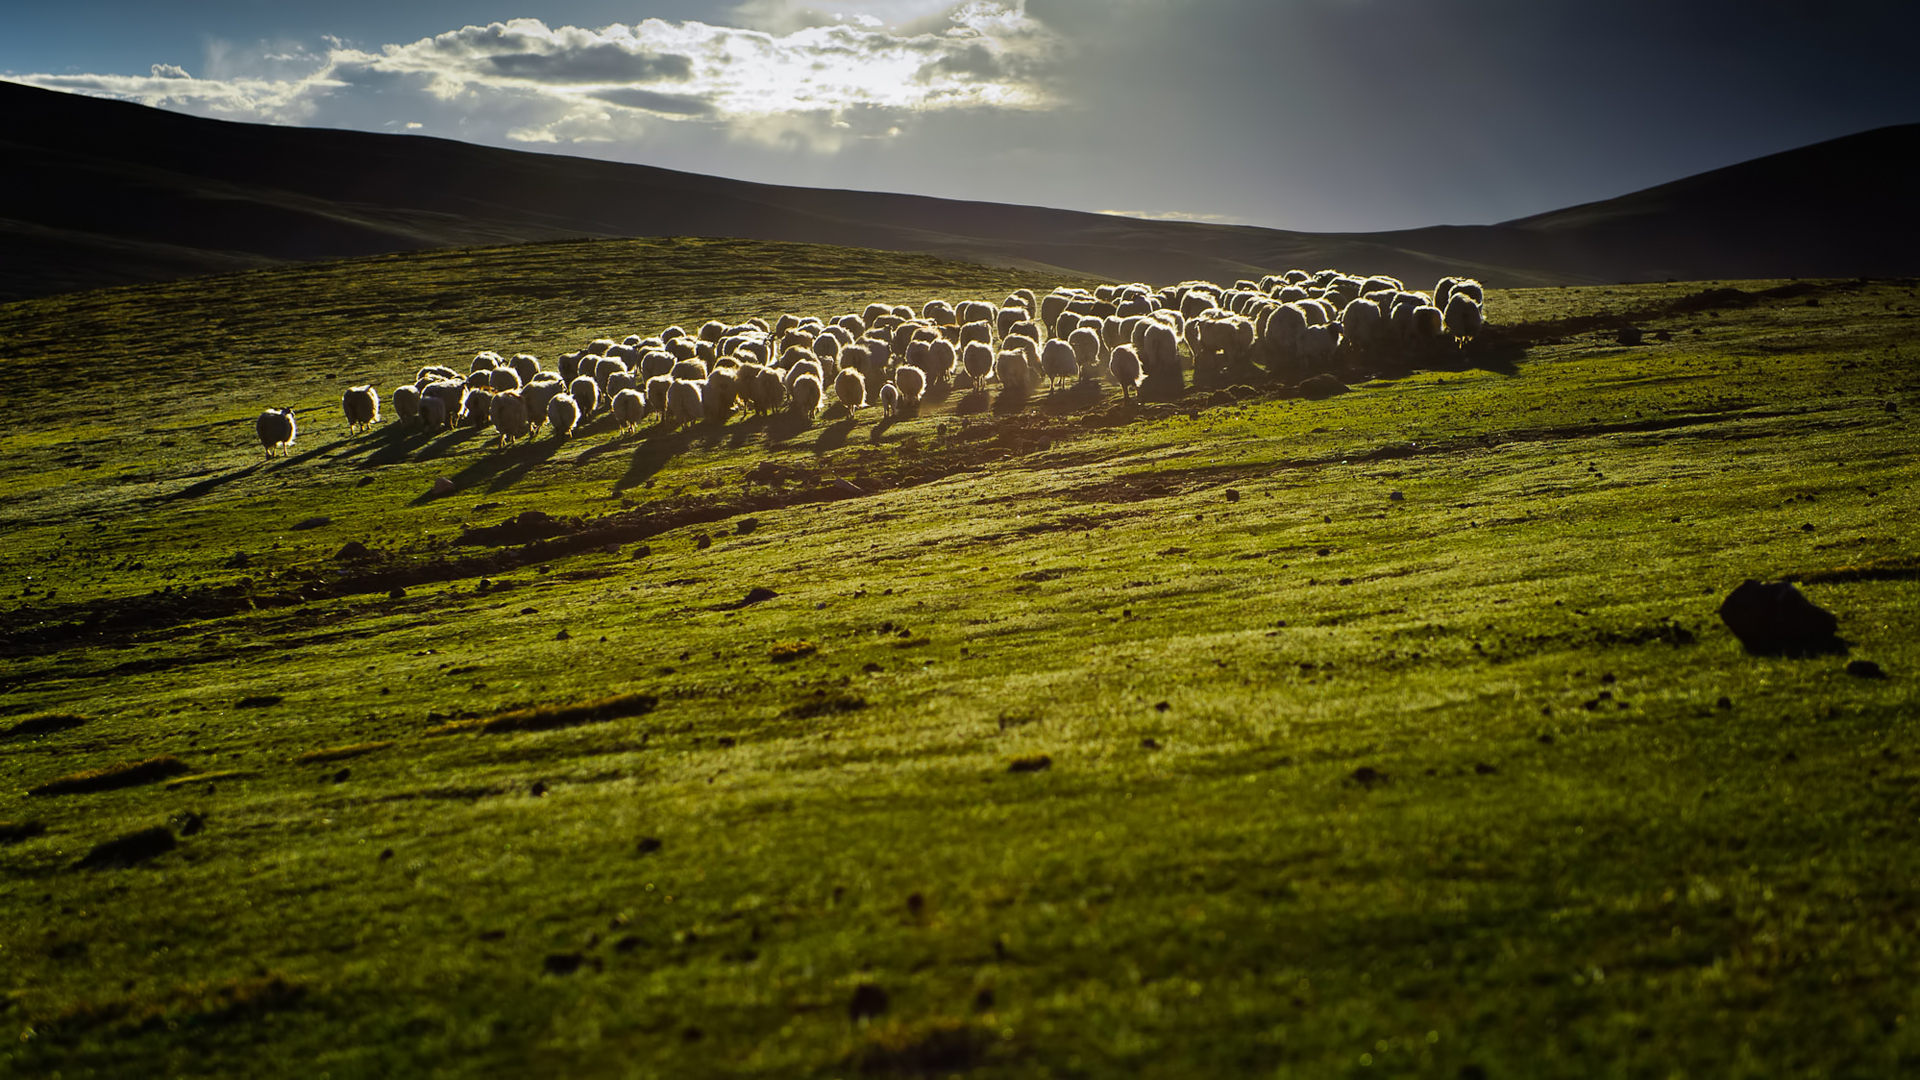 Sheep Full HD Wallpaper And Background Image